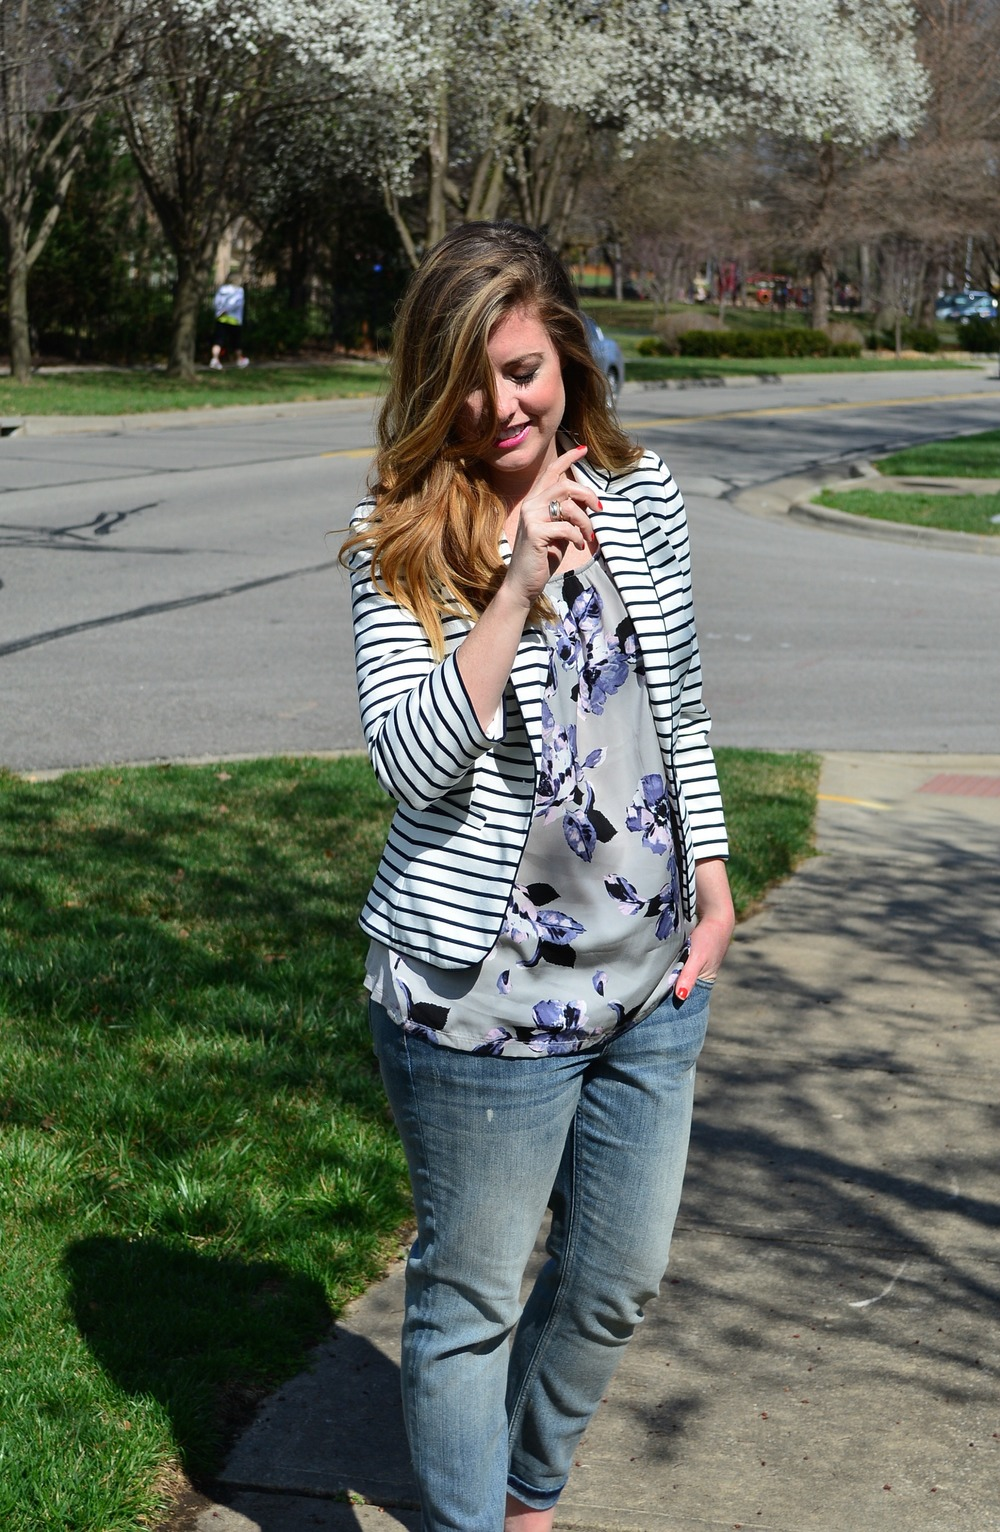 Stripe blazer and floral top combo